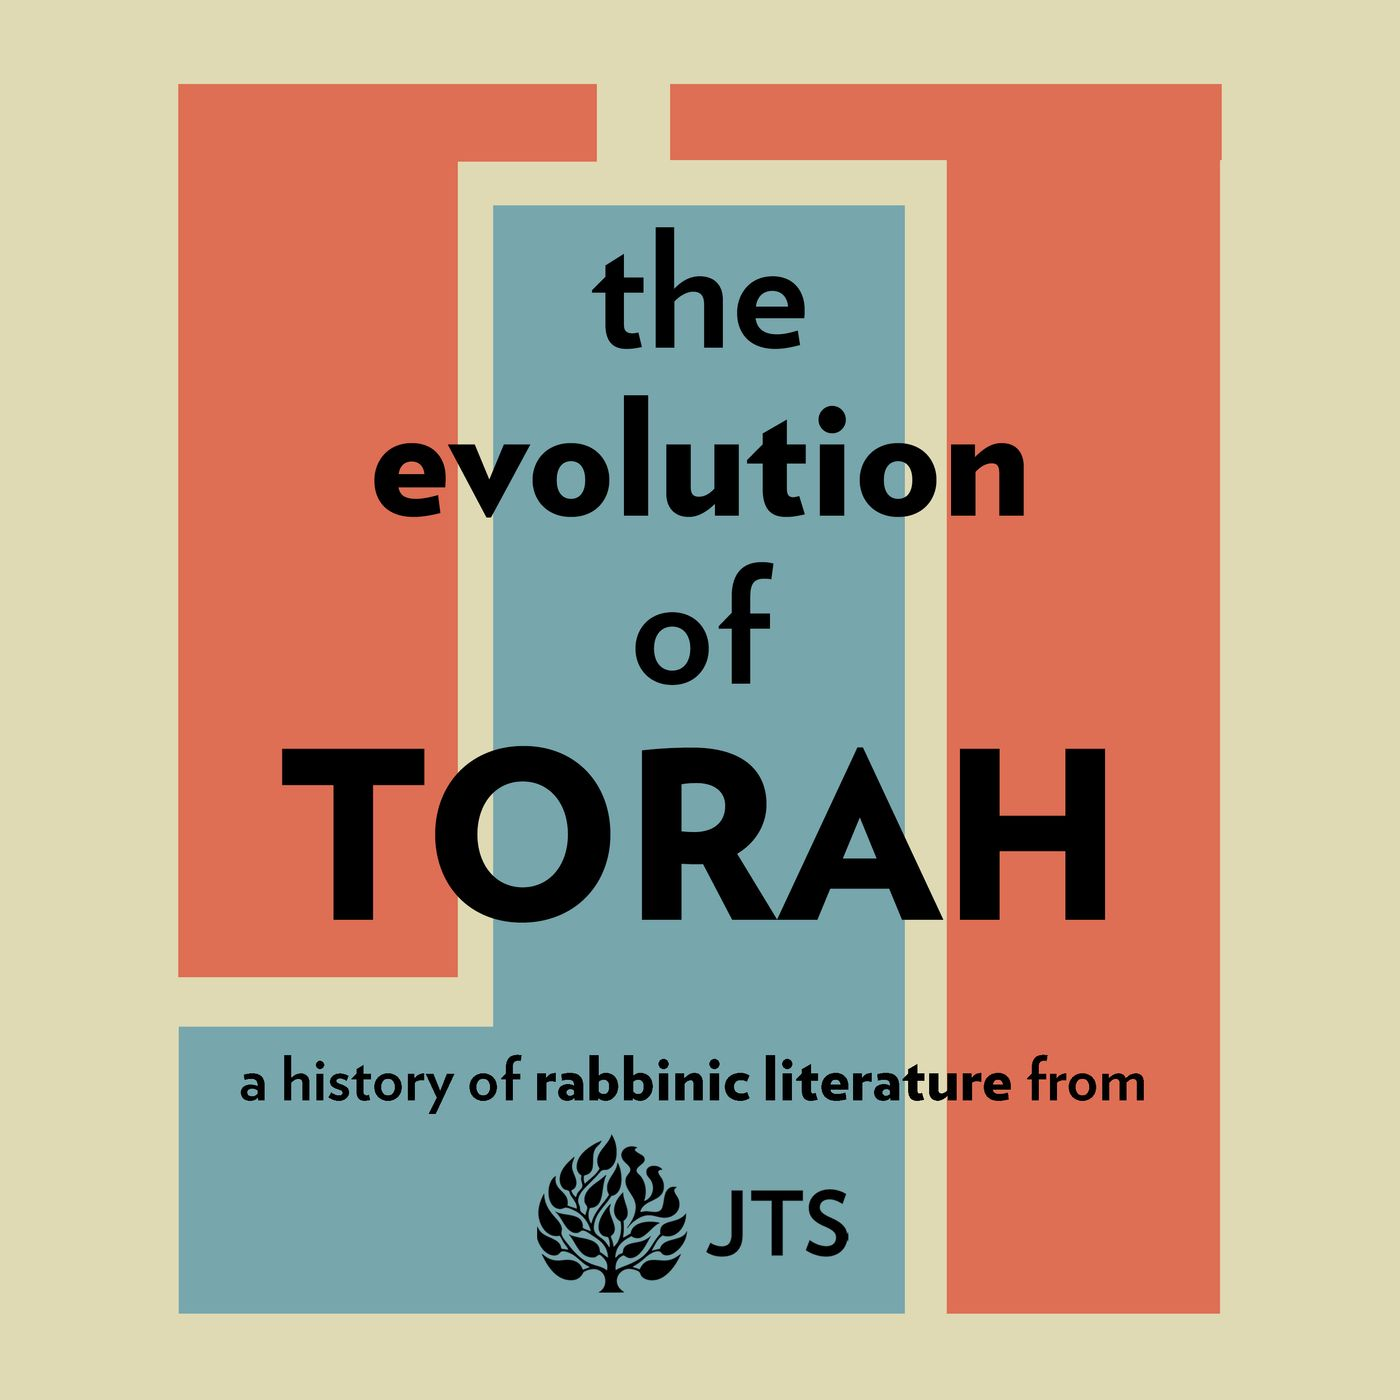 Introducing The Evolution of Torah: a history of rabbinic literature